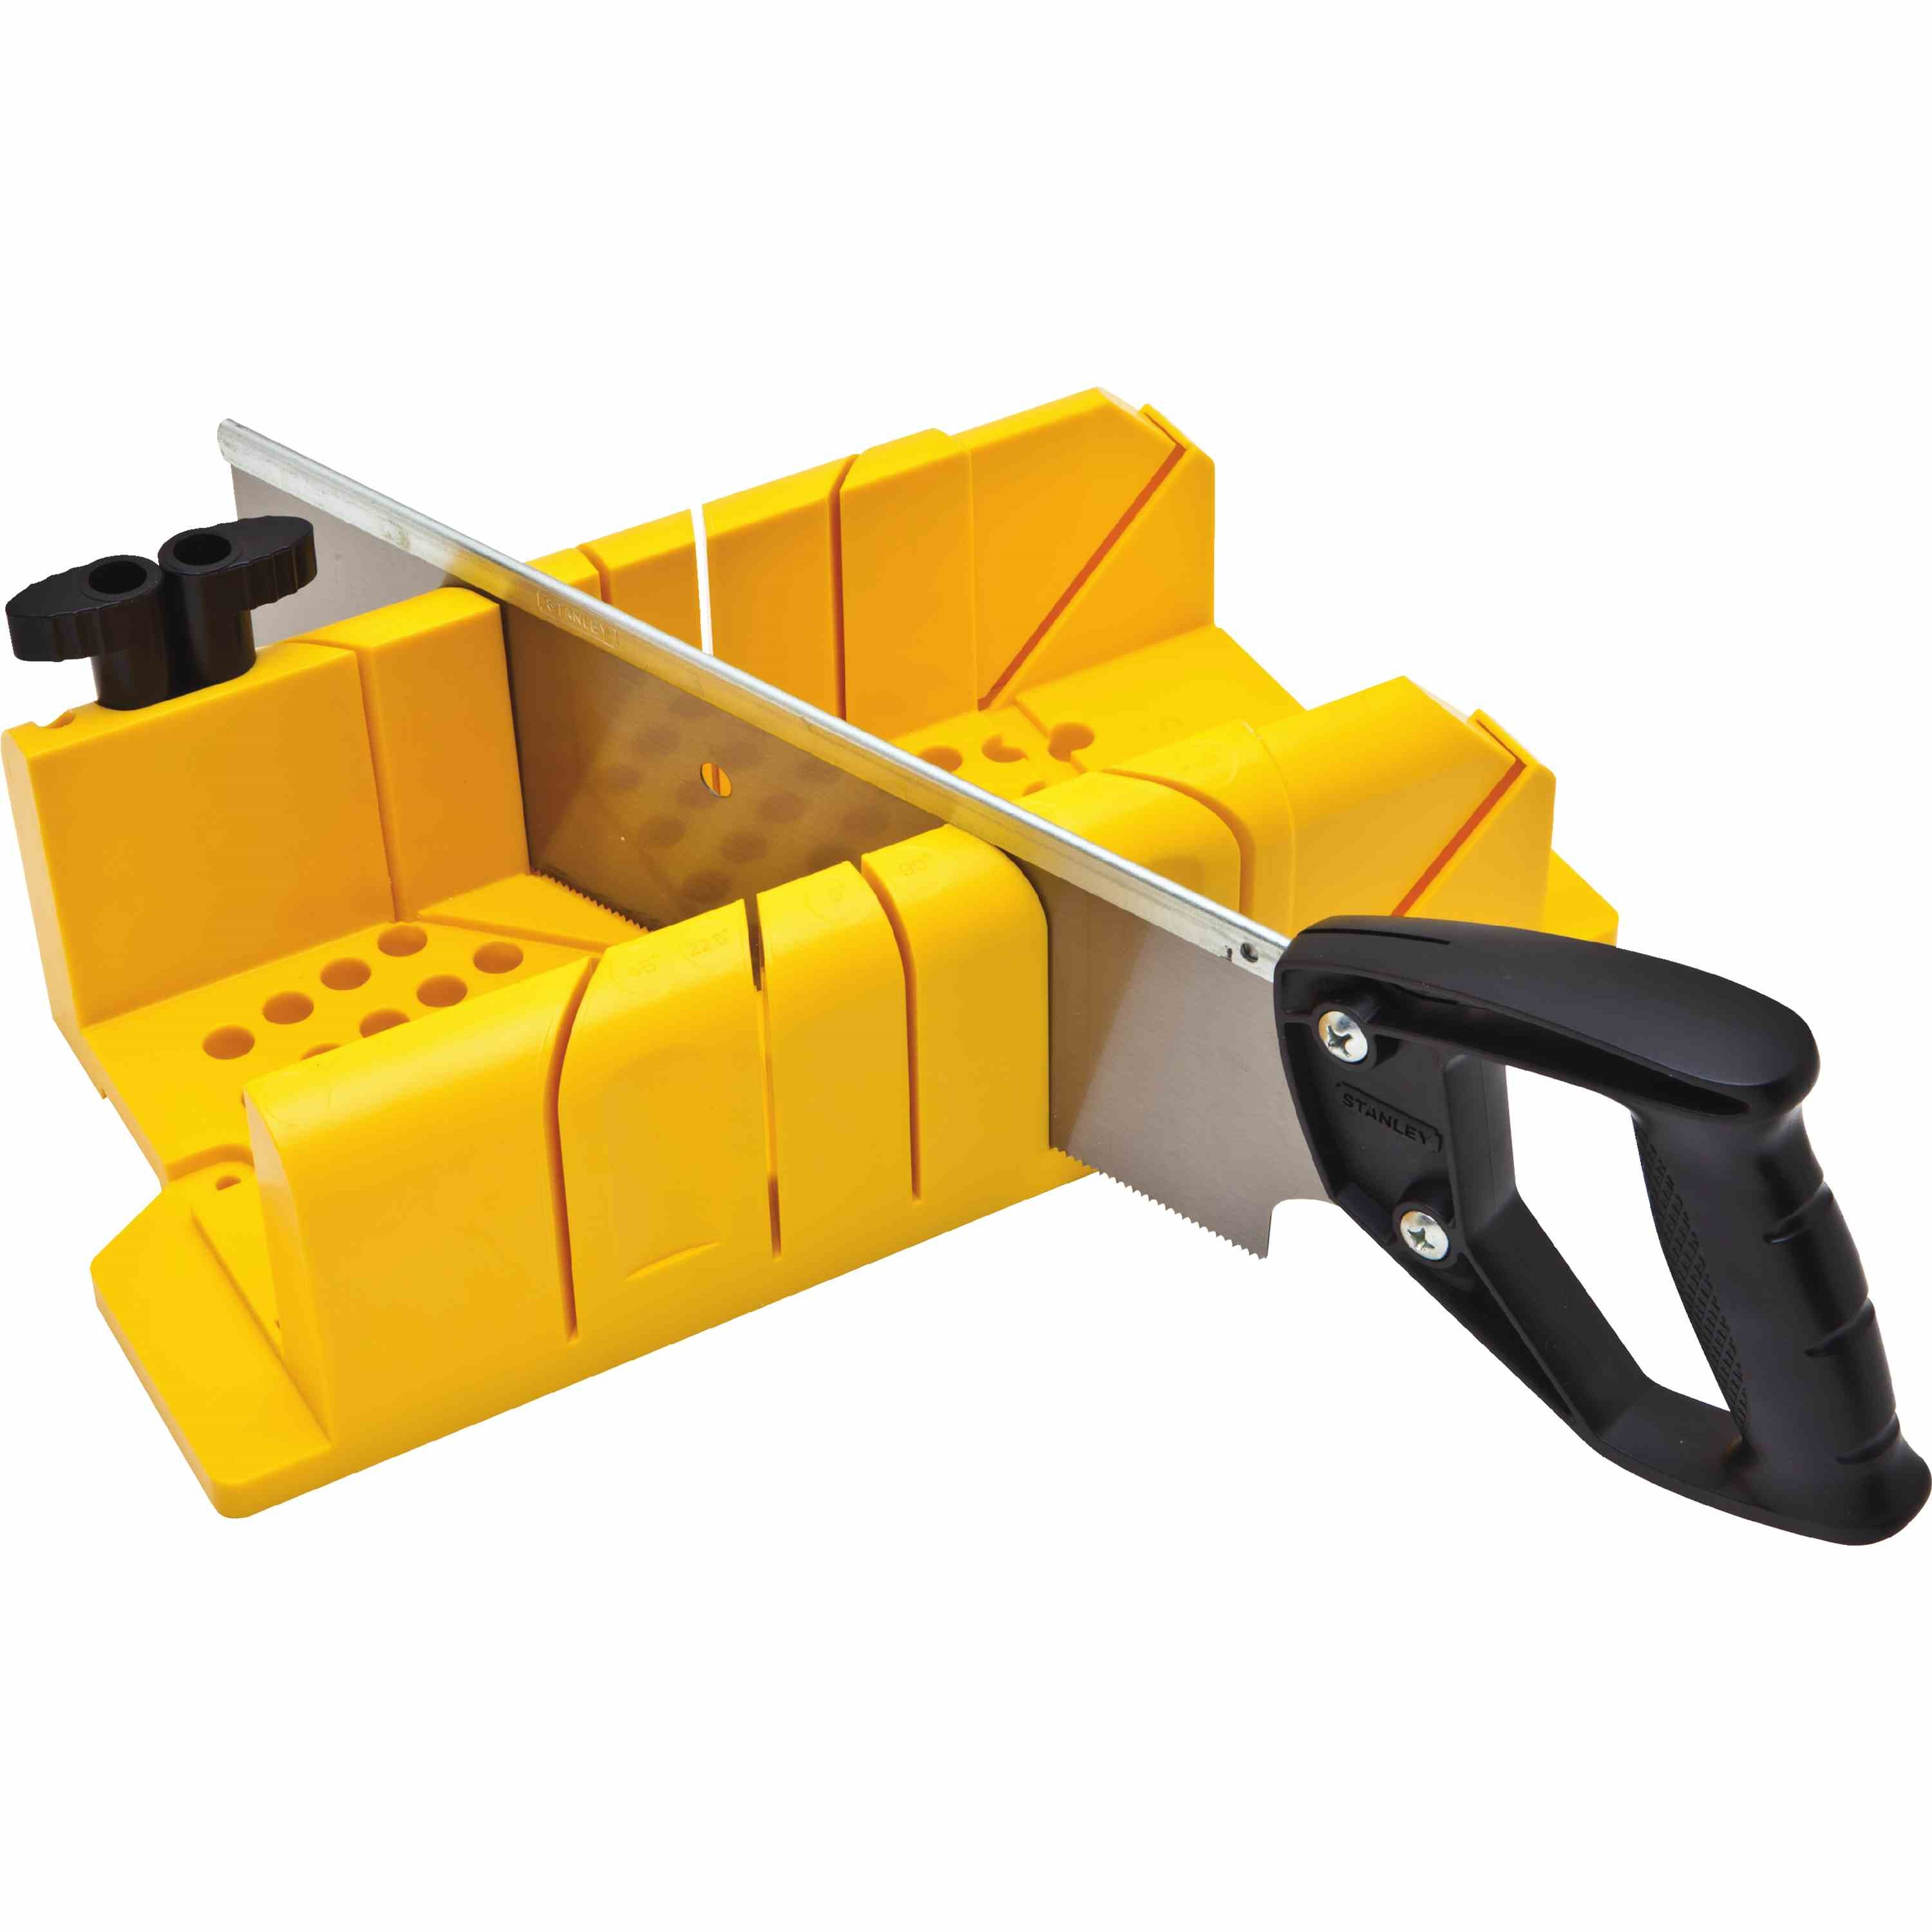 Stanley Tools - Clamping Mitre Box with 14 in Saw - 20-600